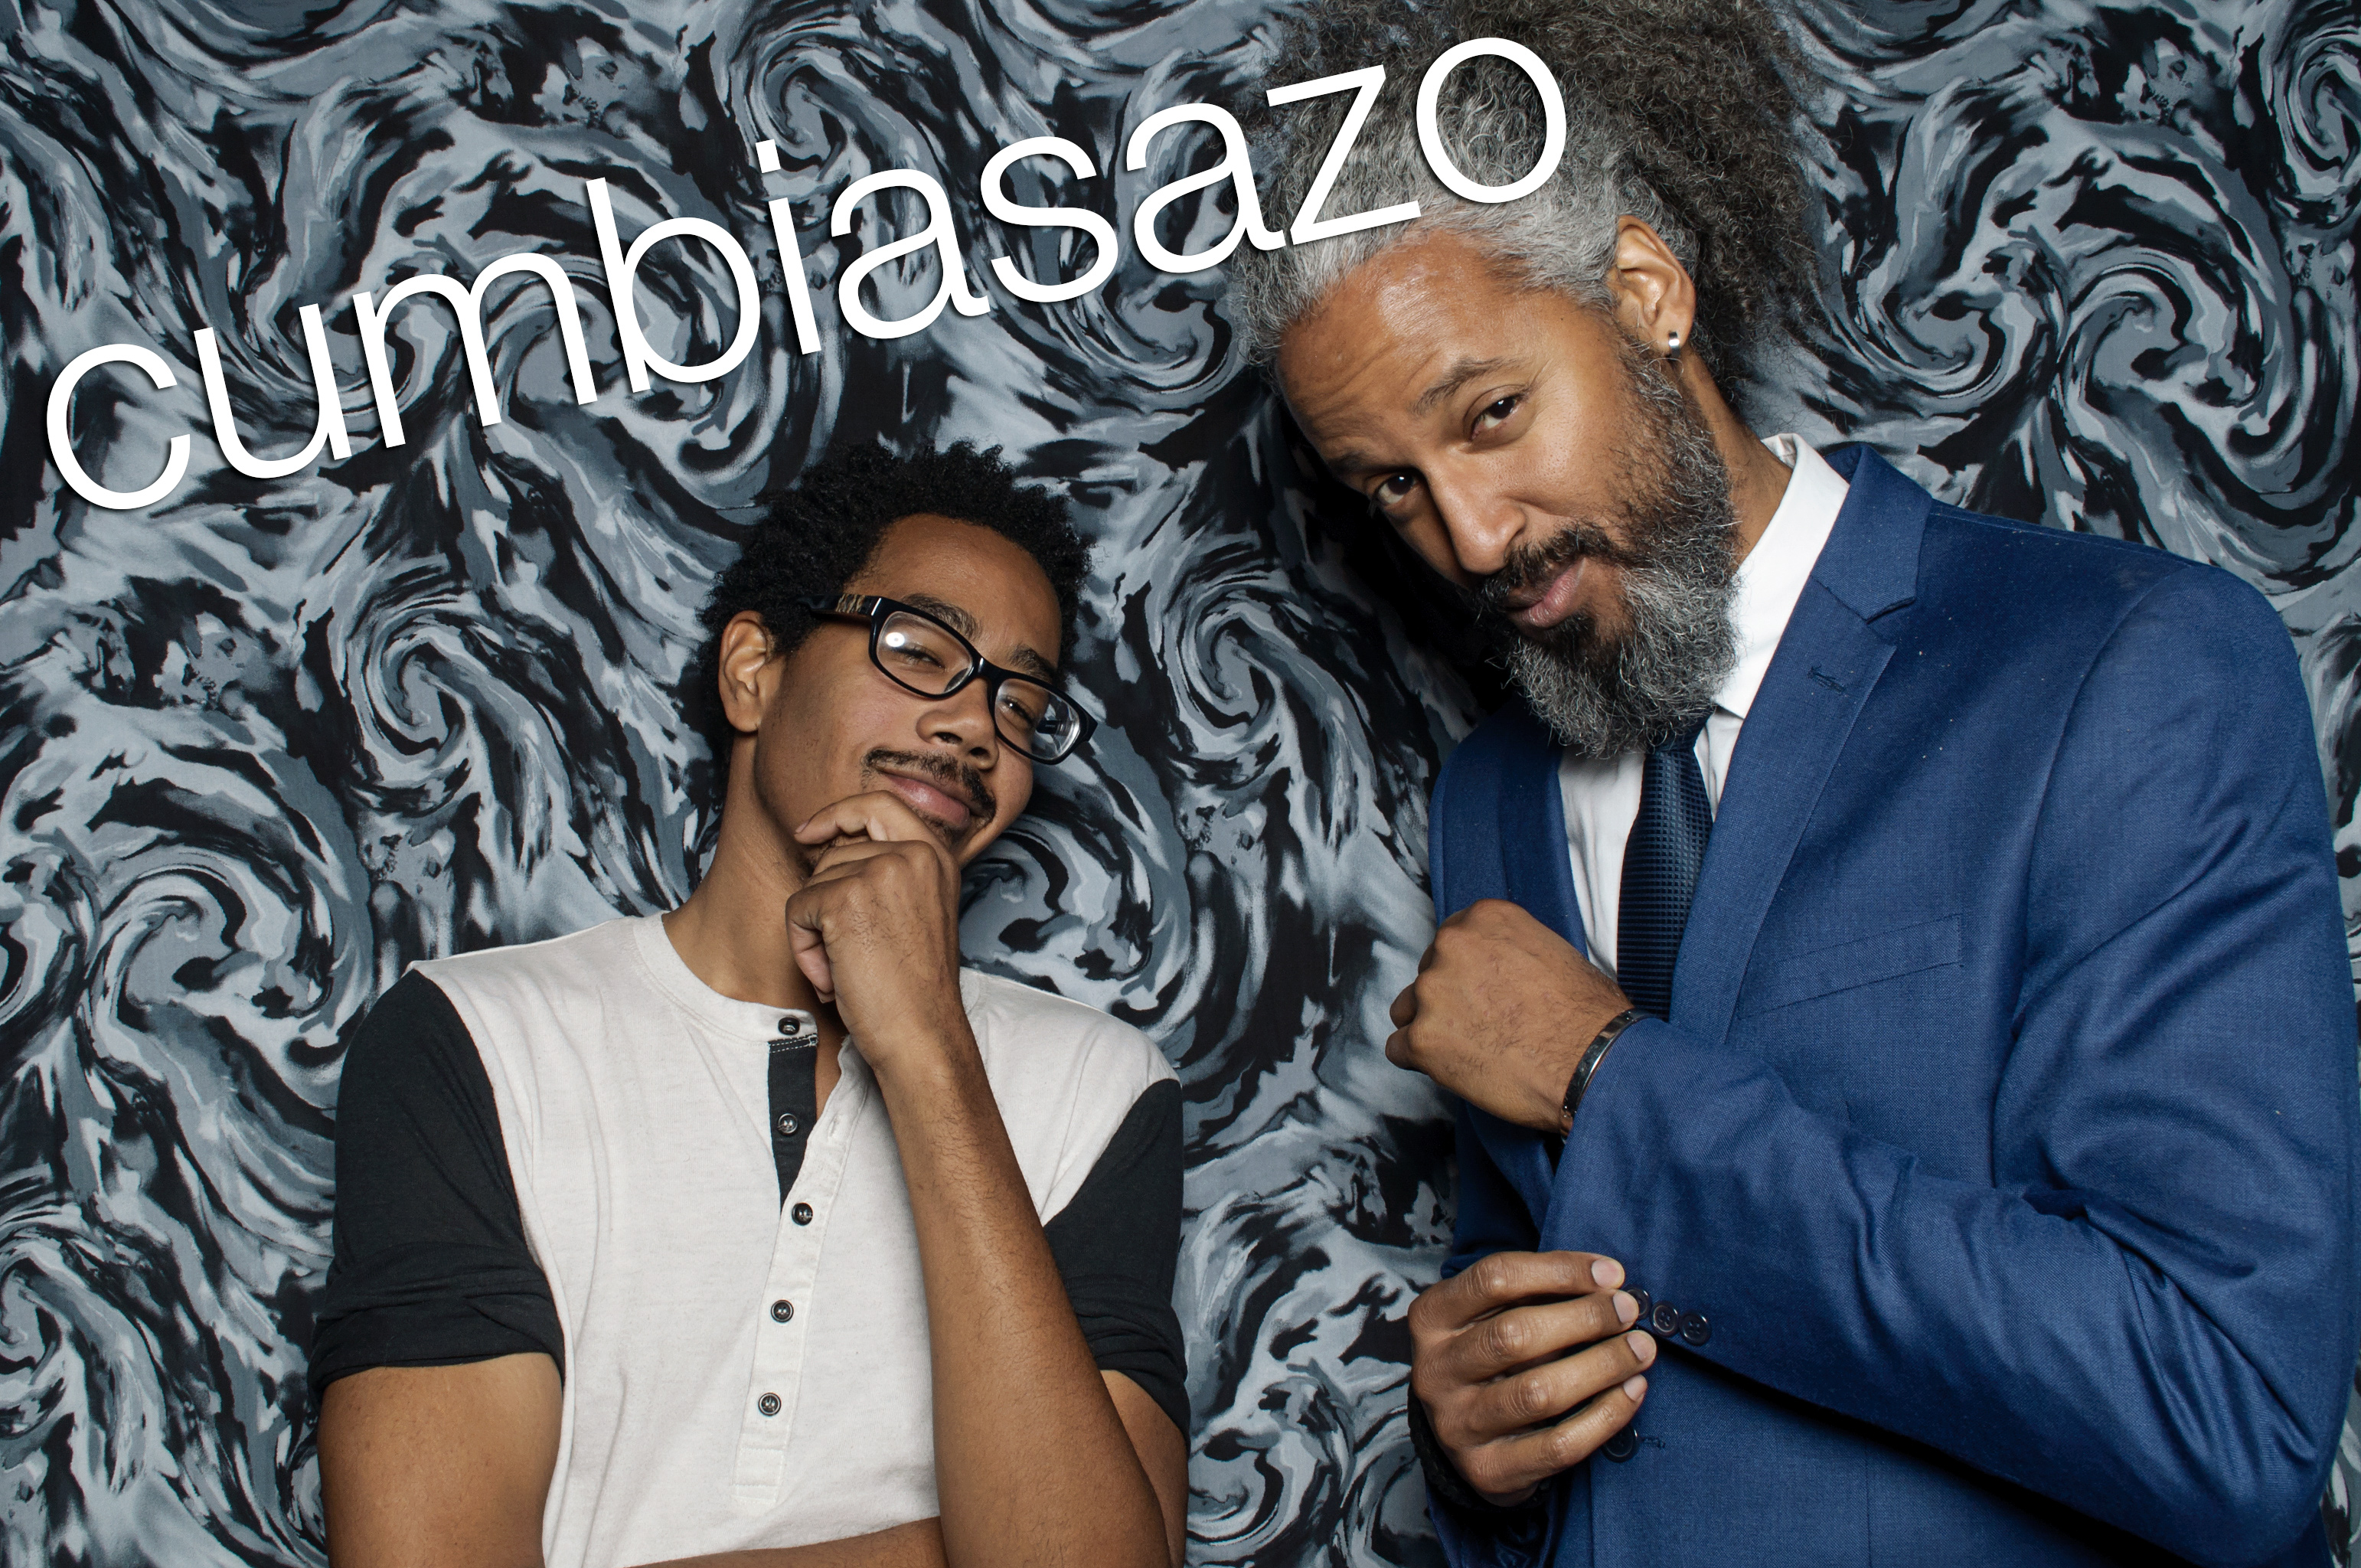 photobooth portraits from cumbiasazo in chicago, october 2016